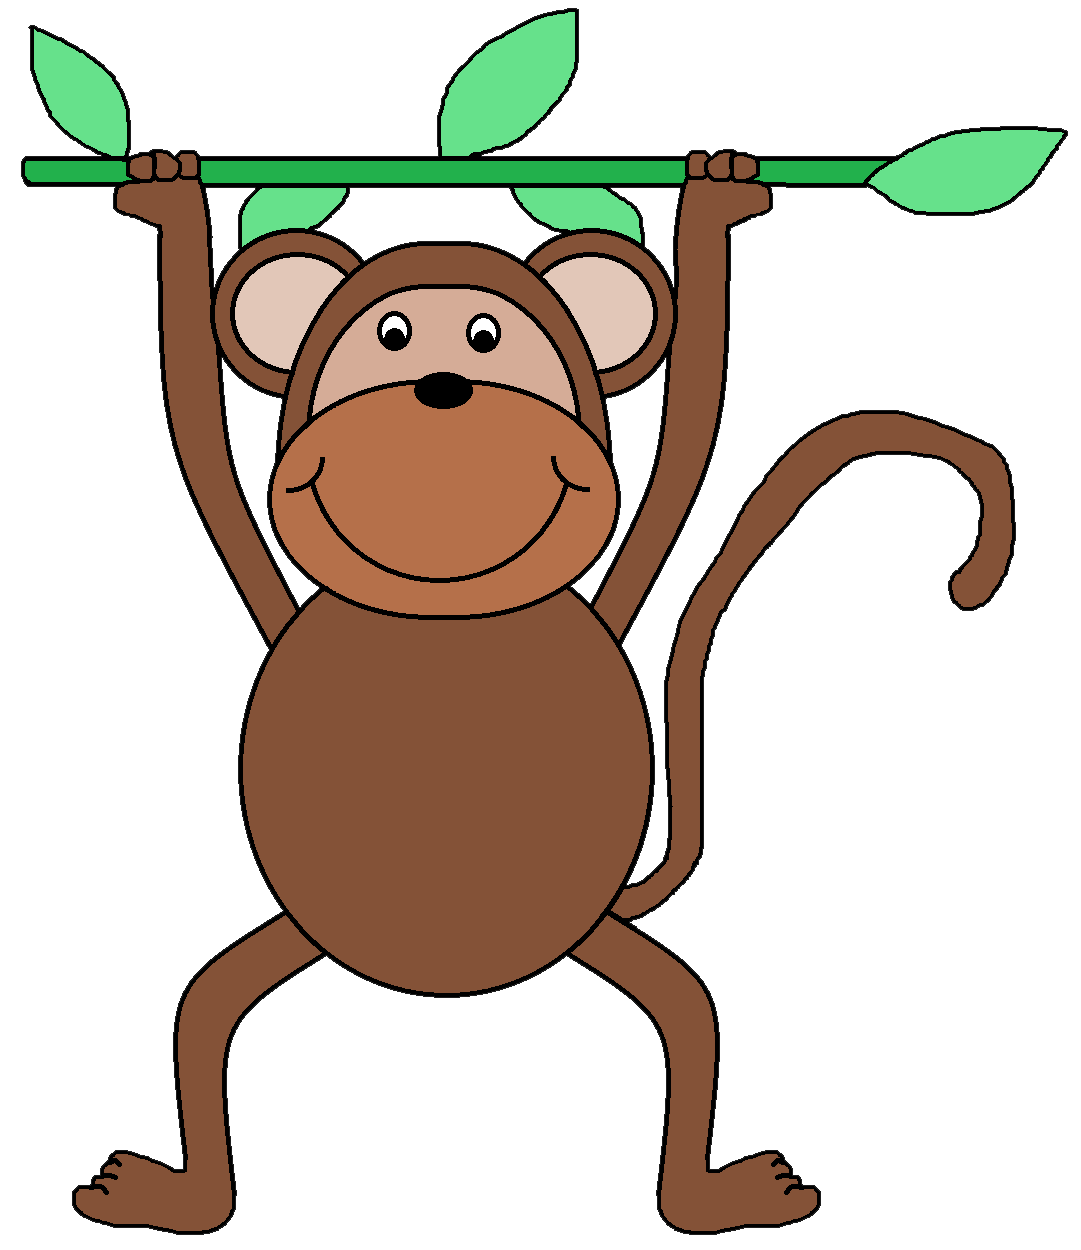 Number clipart monkey ClipartMonk face Art Clipart for